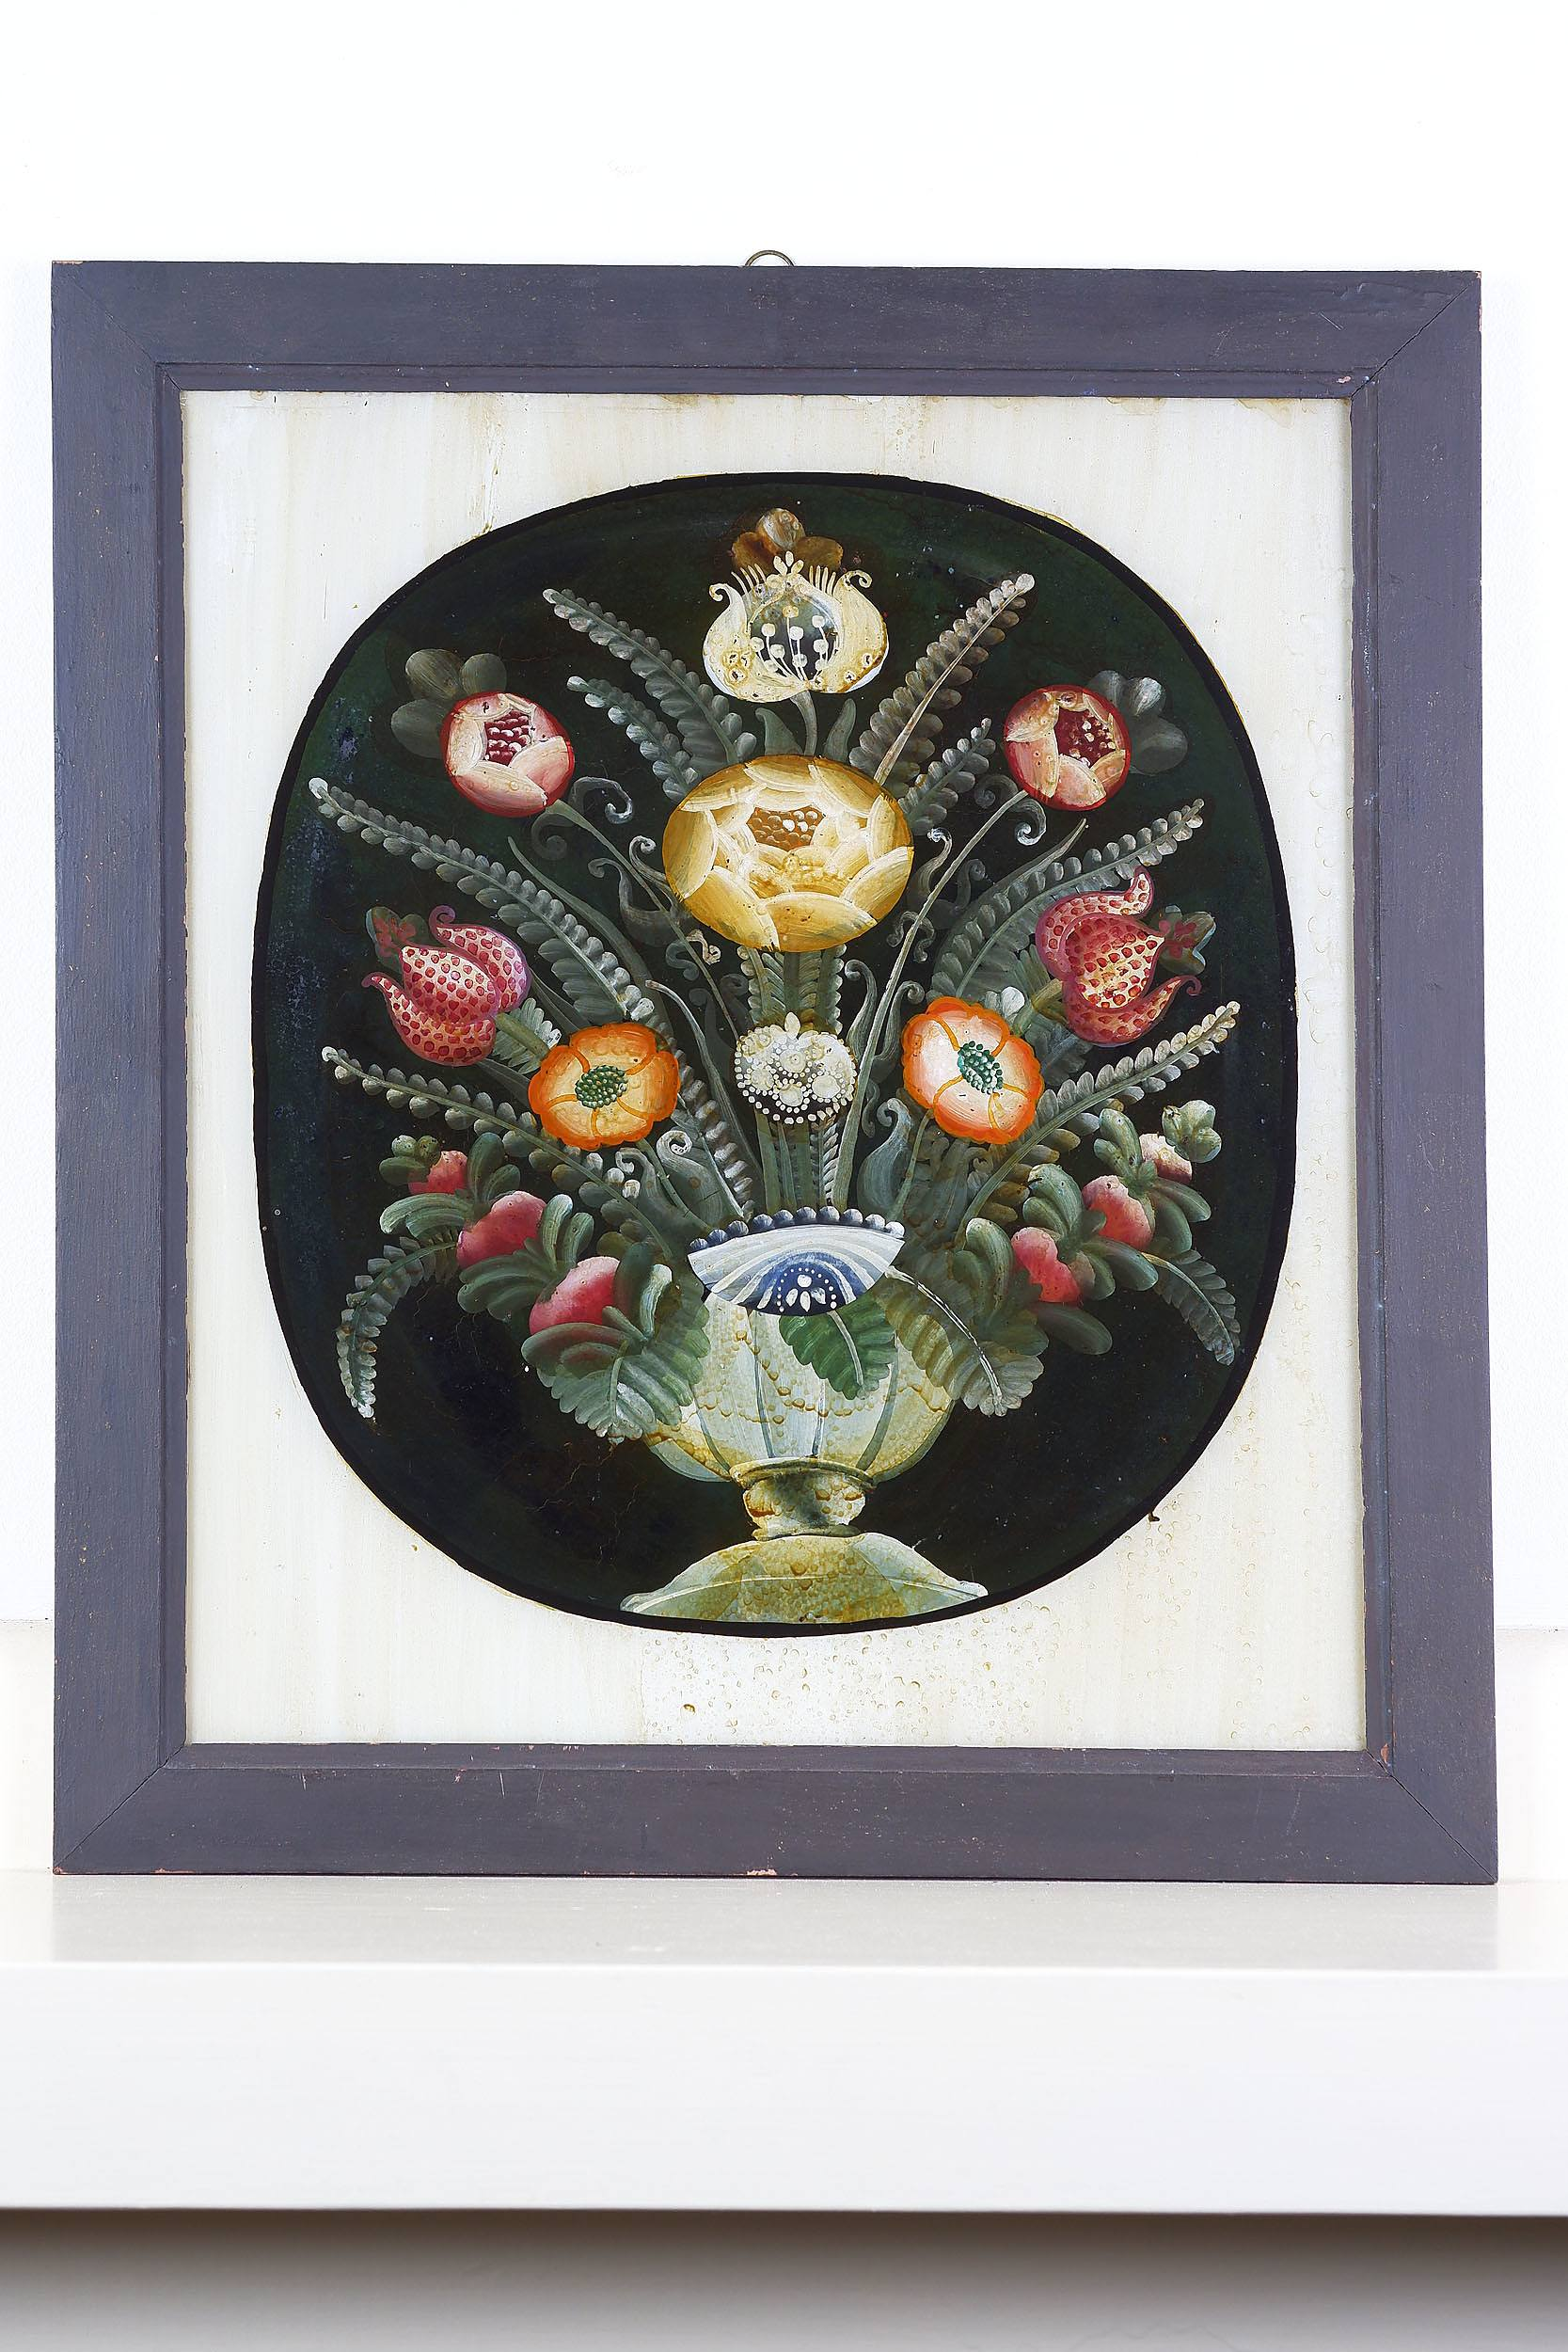 'Antique Italian Reverse Glass Painting of a Vase with Flowers'